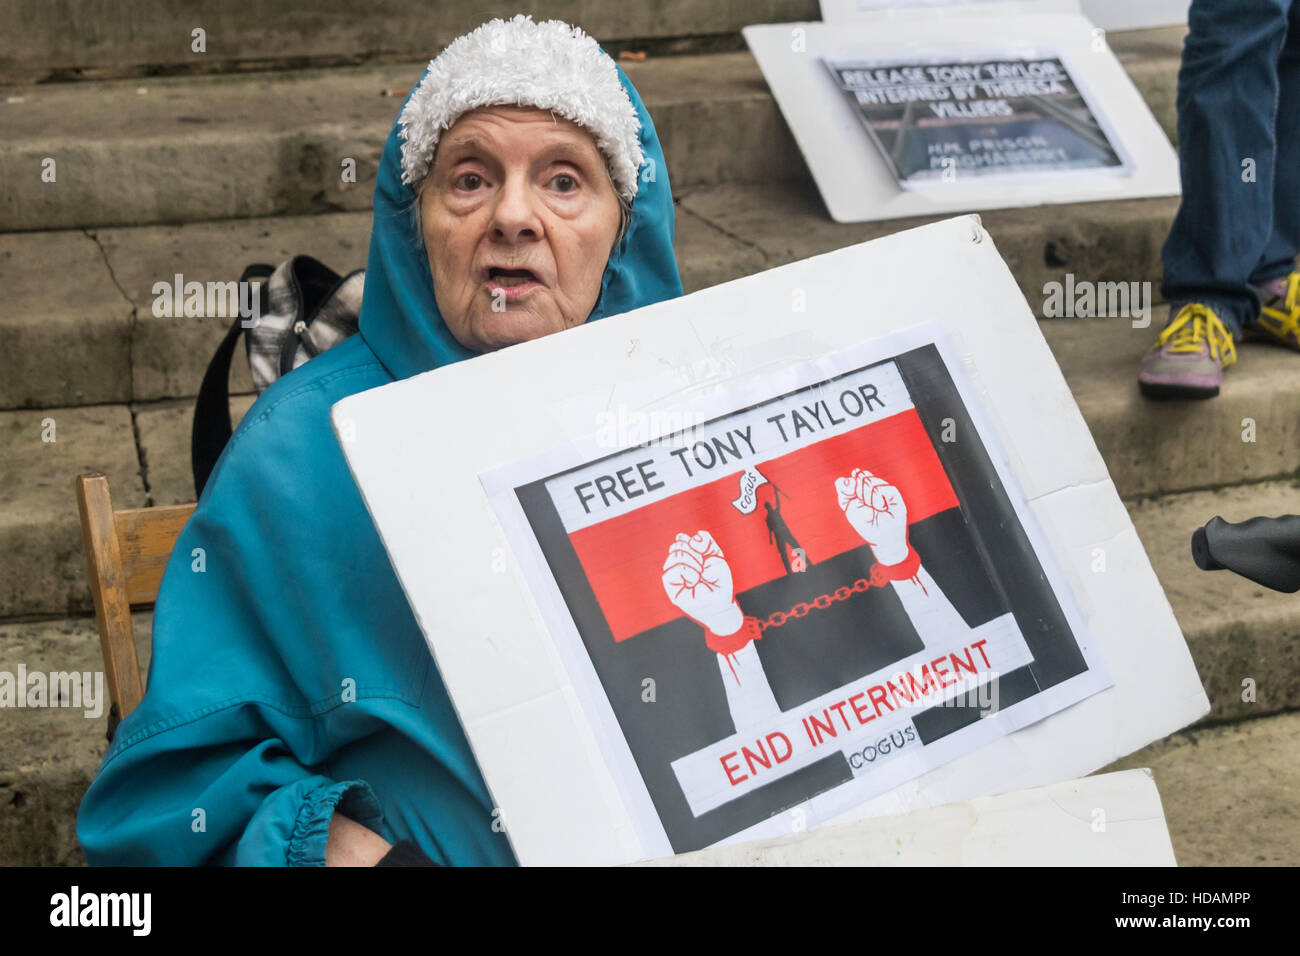 London, UK. 10th December 2016. A woman holds a poster calling for Tony Taylor to be freed and an end to interment - Stock Image